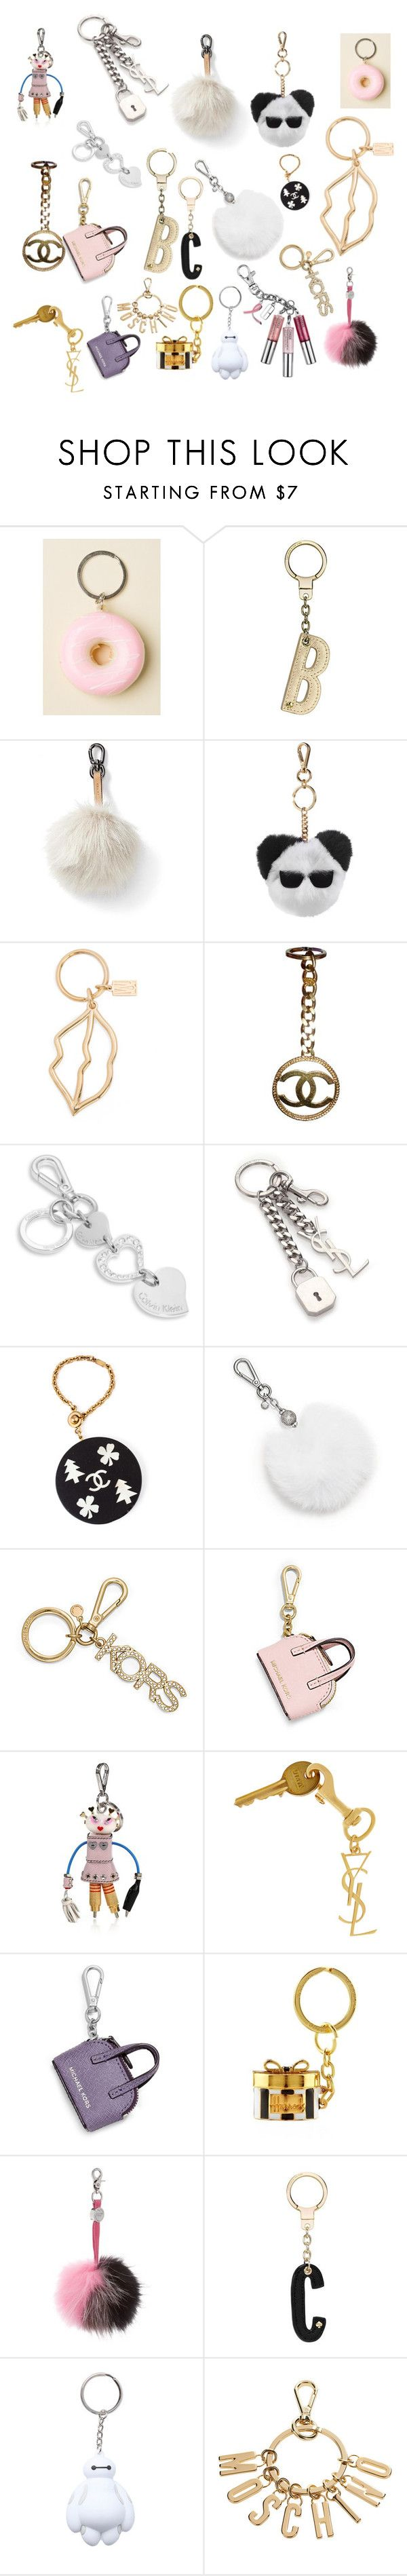 """Keychains"" by outfitsbyqueen ❤ liked on Polyvore featuring Kate Spade, Banana Republic, Karl Lagerfeld, Kelly Wearstler, Chanel, Calvin Klein, Yves Saint Laurent, Michael Kors, Prada and MICHAEL Michael Kors"